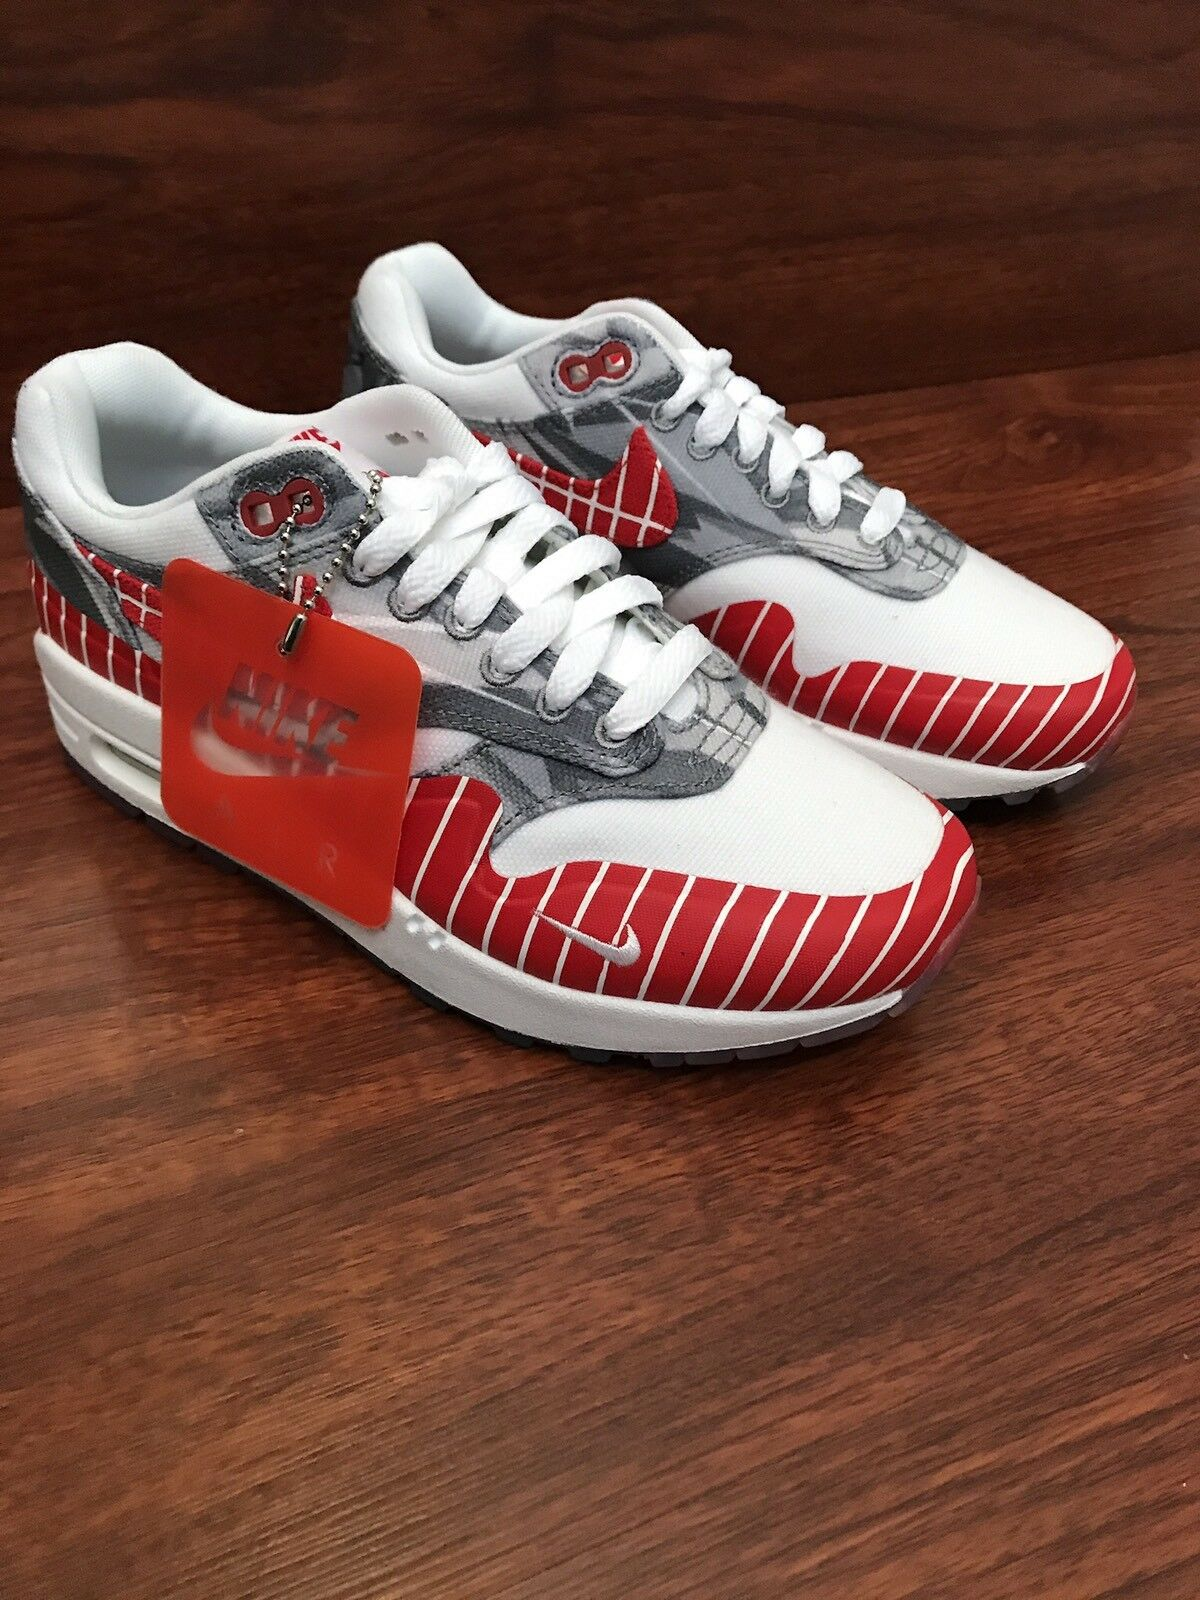 Nike Air Max 1 LHM Los Primeros Running Shoes White Red AH7740-100 Mens Size 4